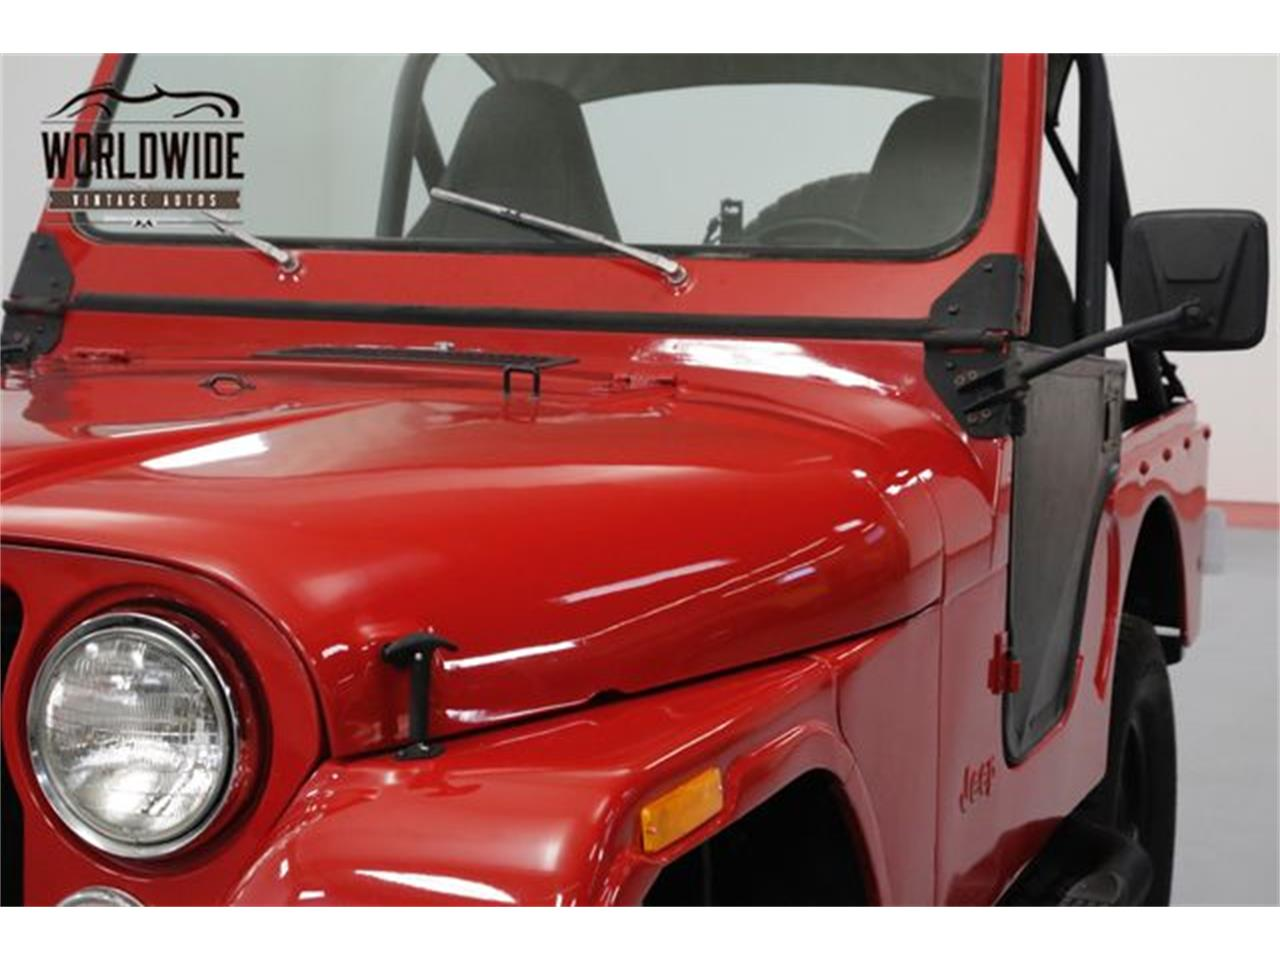 Large Picture of 1979 Jeep CJ5 located in Colorado - $12,900.00 Offered by Worldwide Vintage Autos - OWHF